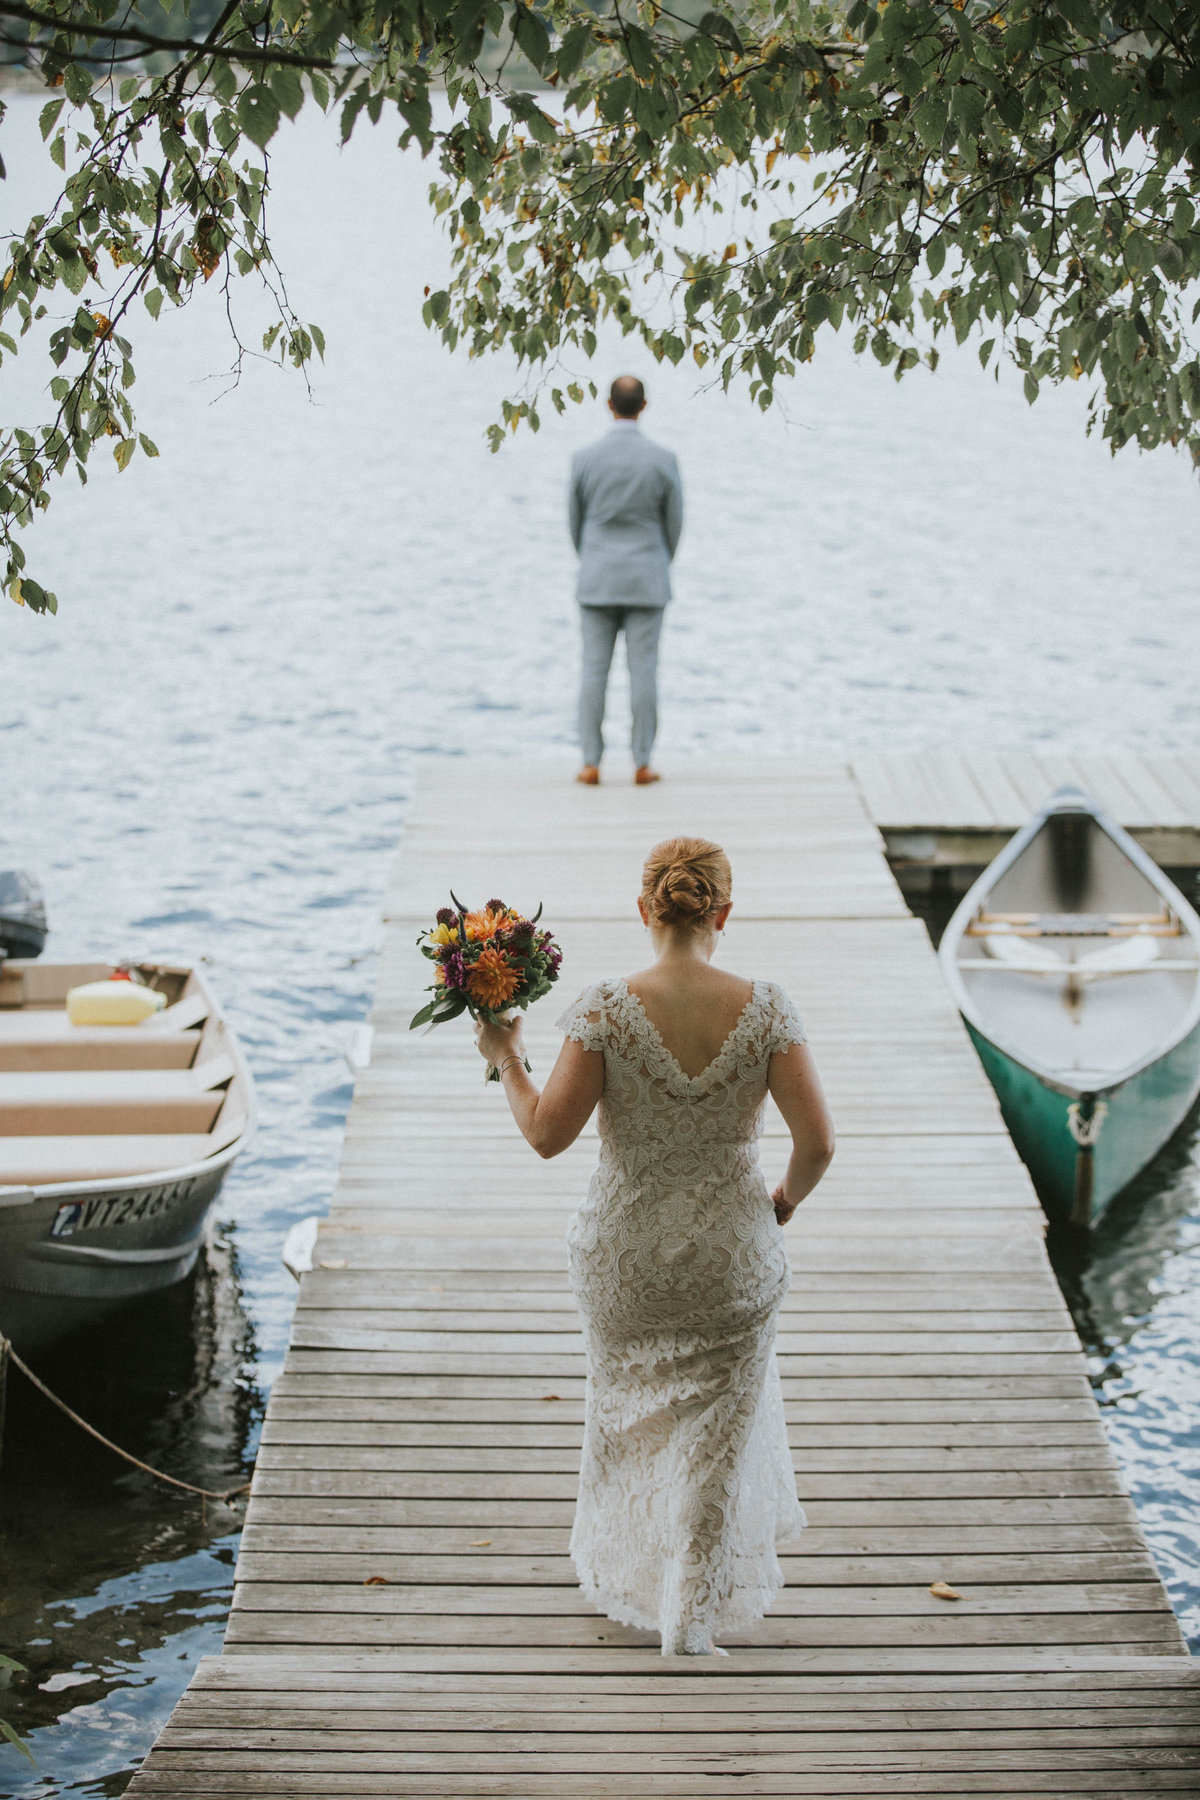 vermont-wedding-engagement-elopement-photographer-010